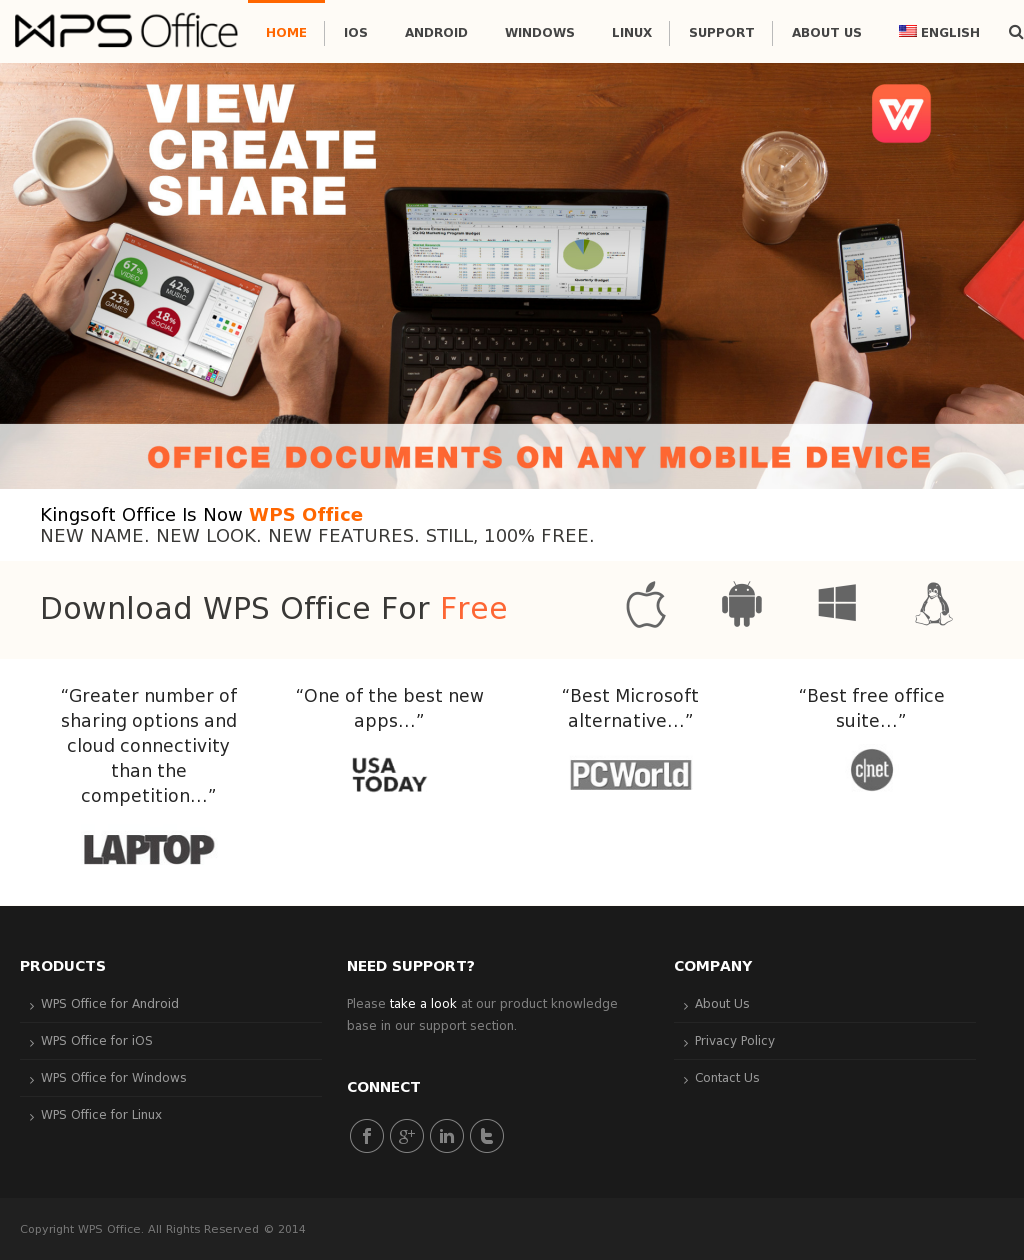 WPS Office Competitors, Revenue and Employees - Owler Company Profile